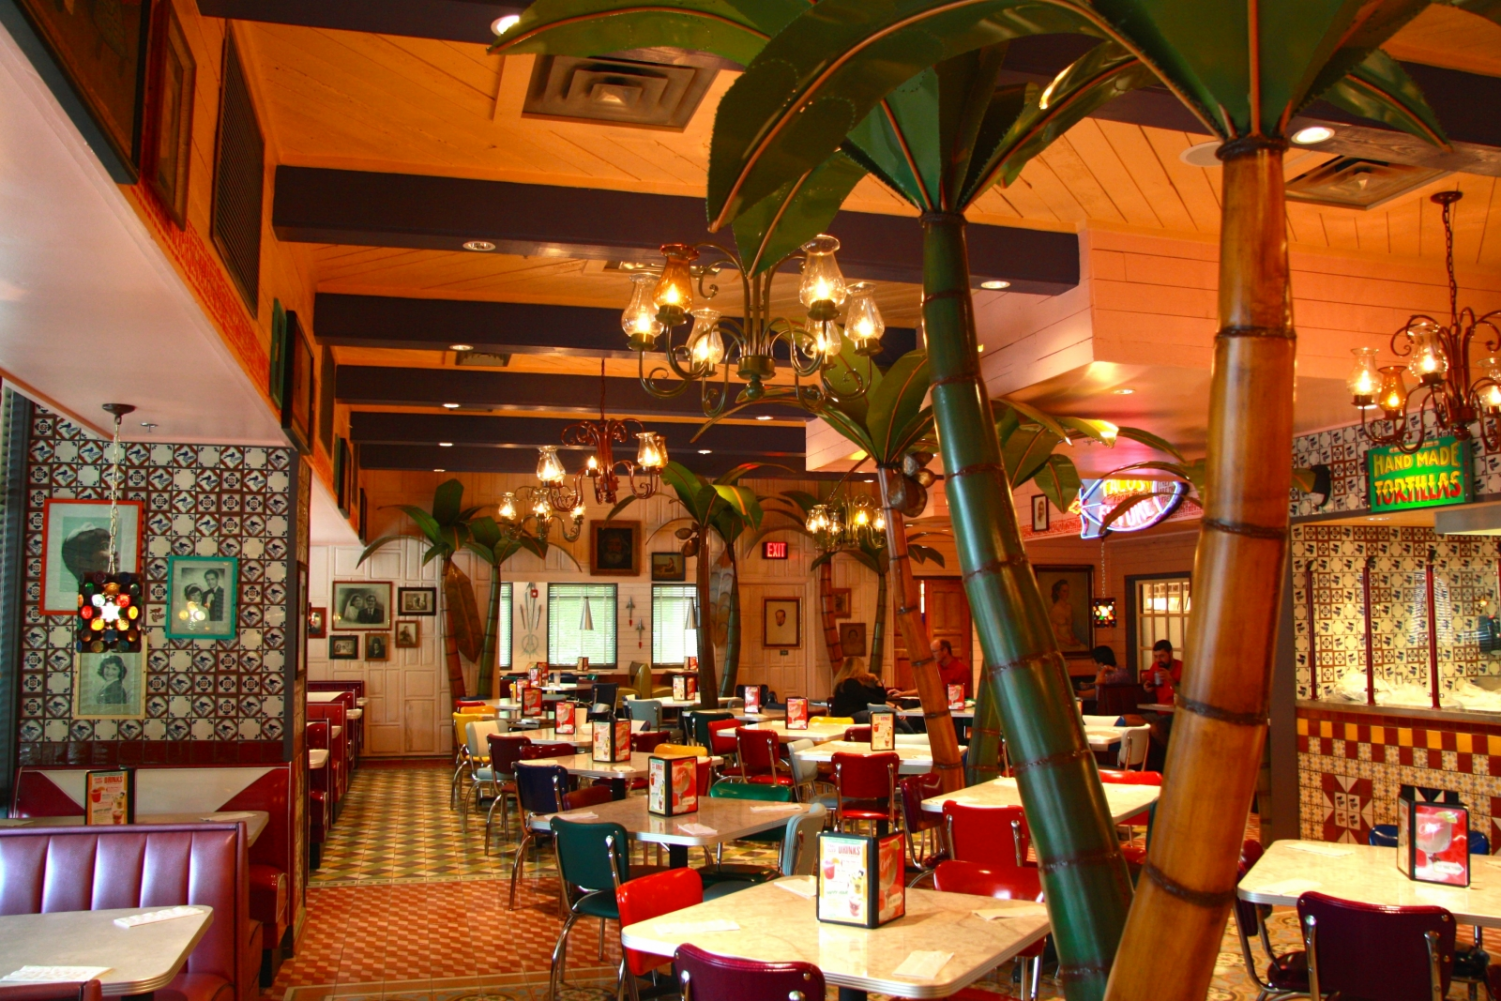 Chuy's eclectic decor offers a colorful and welcoming environment for any customer walking in. Photo by Austin Mucchetti